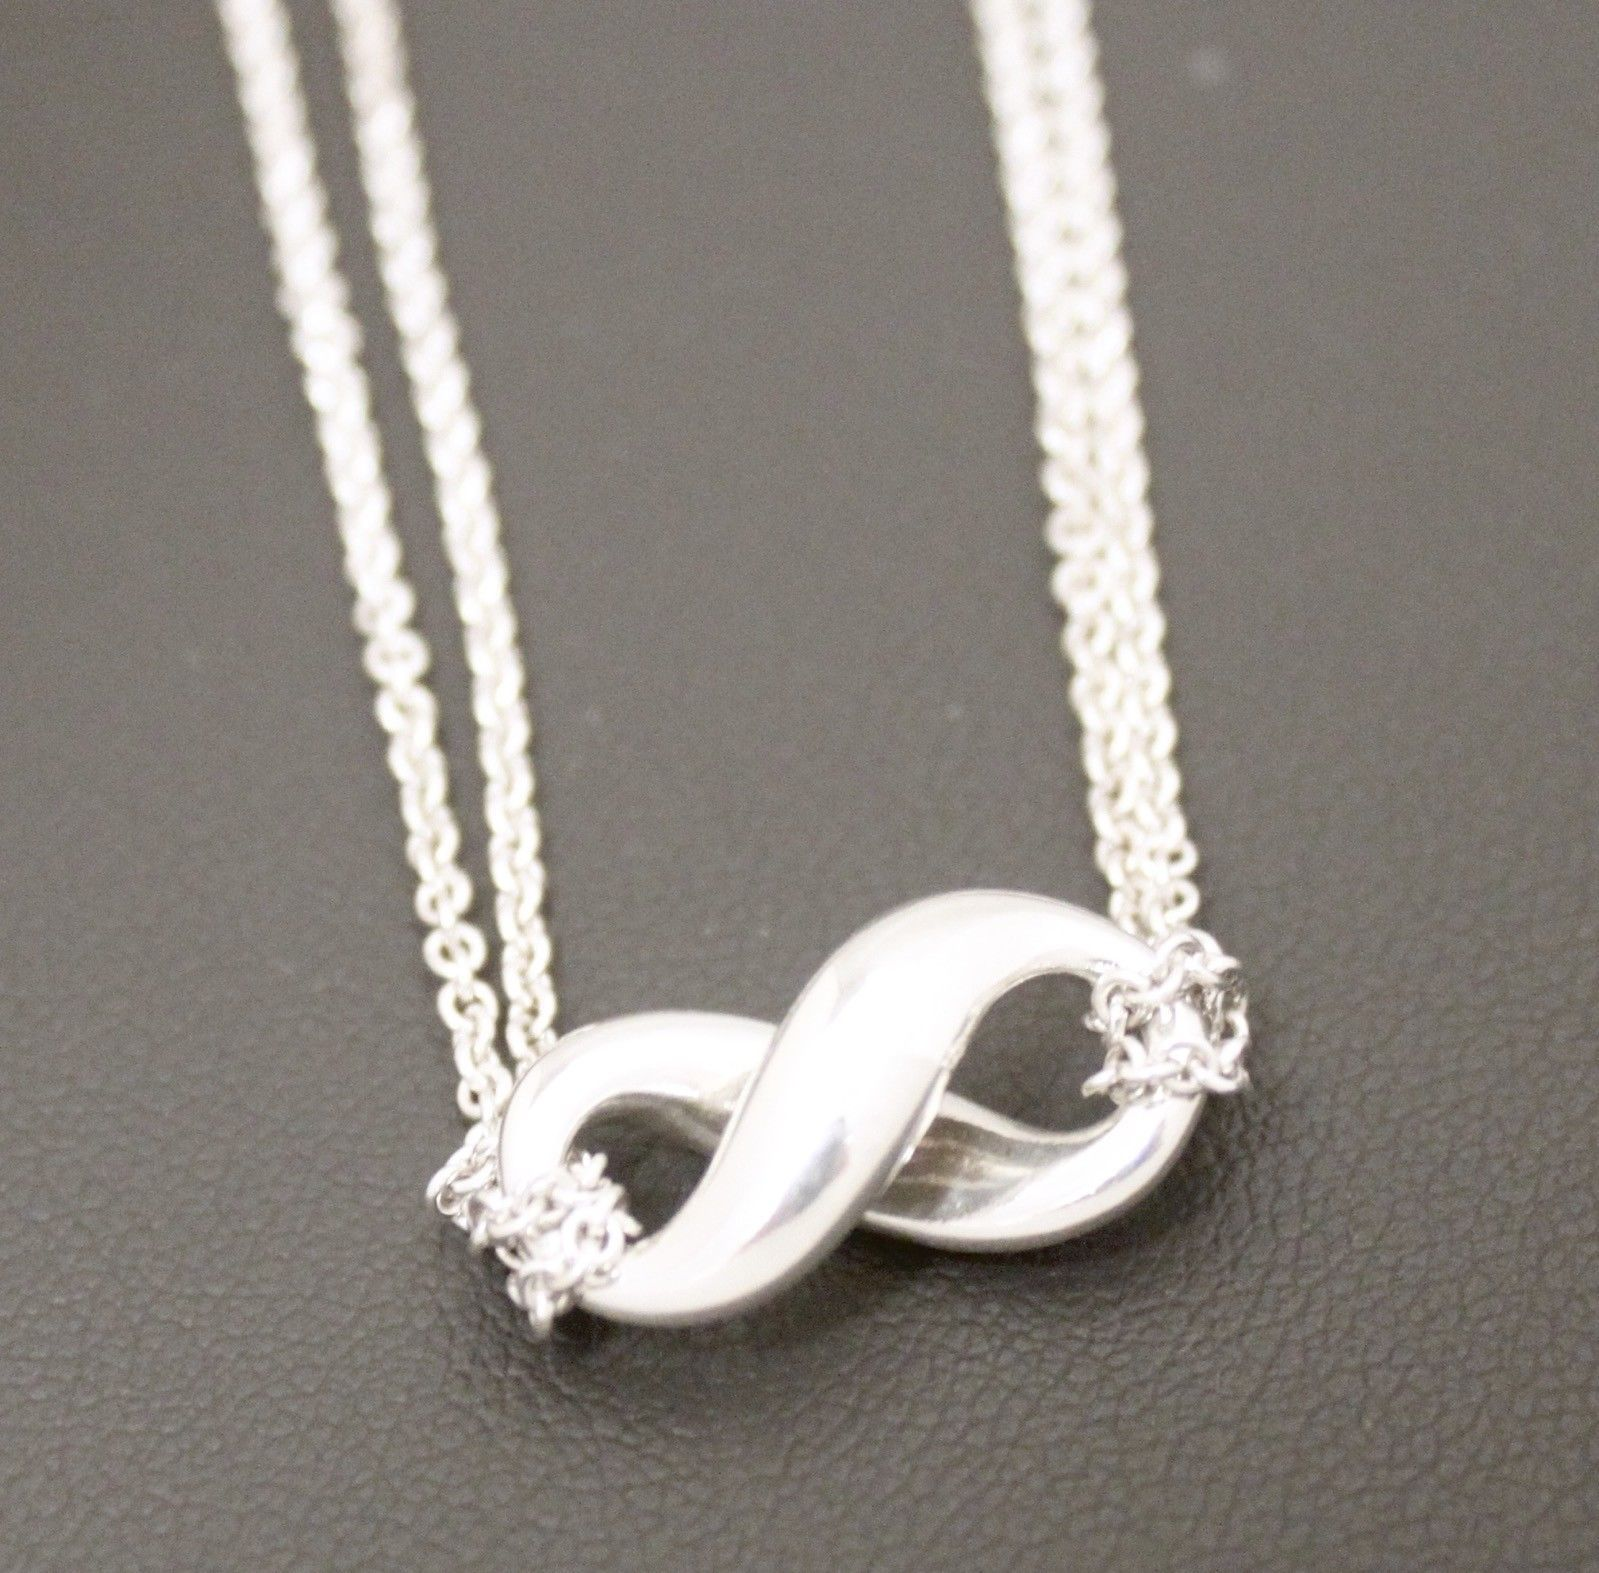 """81002dd8a S l1600. S l1600. Previous. Tiffany & Co. Sterling Silver 925 Infinity 16"""" Double  Strand Pendant"""